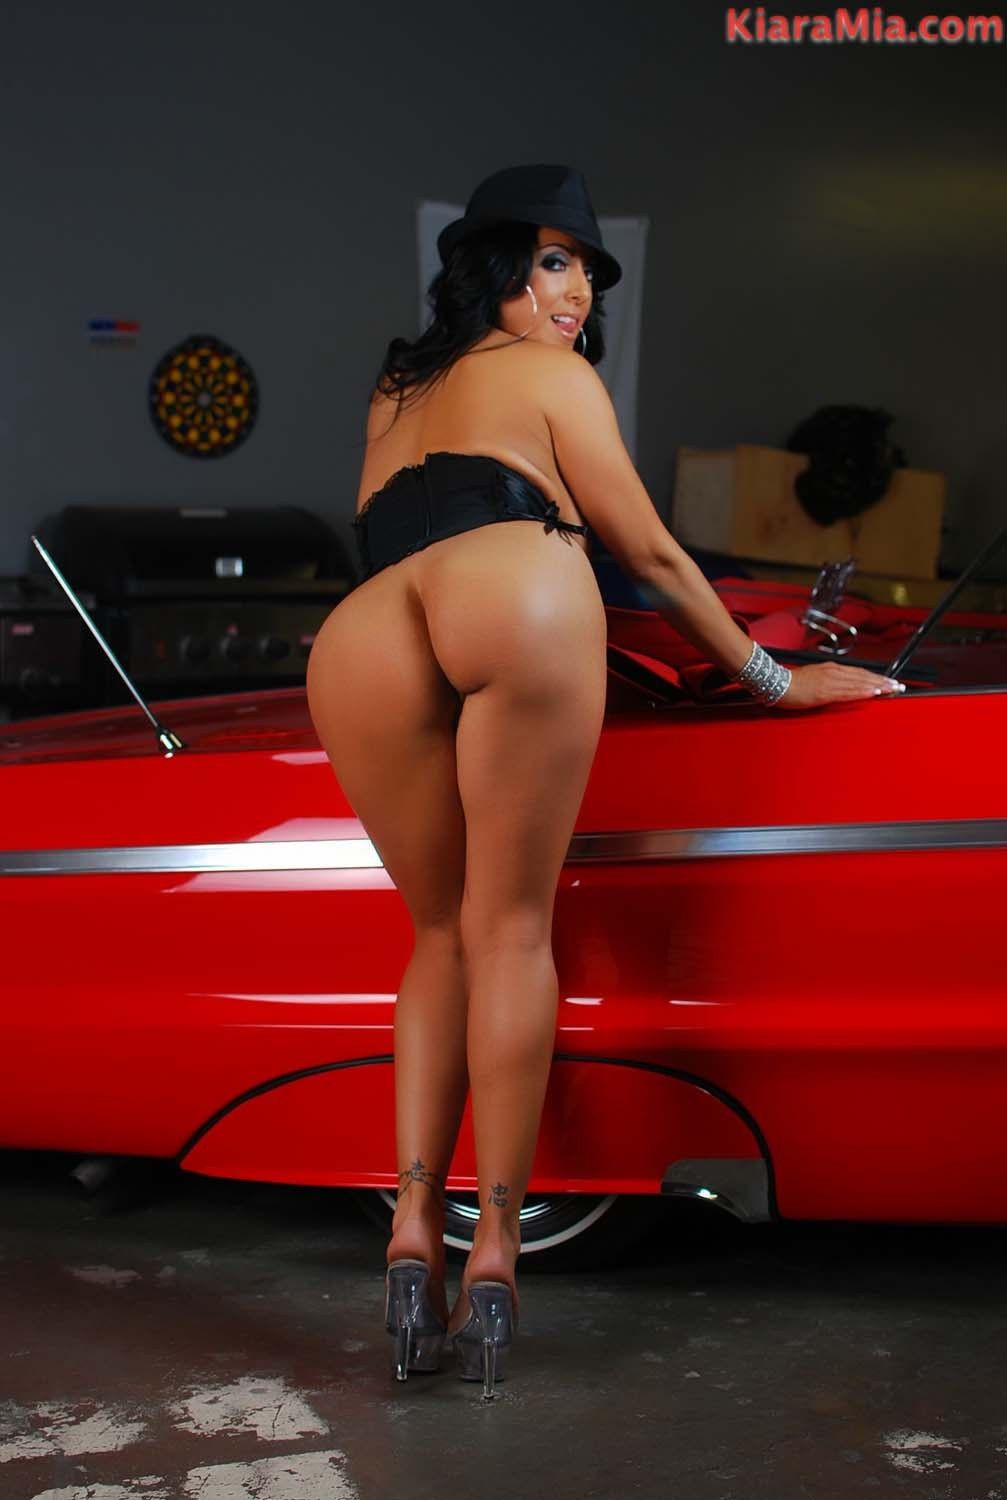 Untamed chicana kiara mia positions next to this low rider. this sweetheart gains so sticky and lascivious s